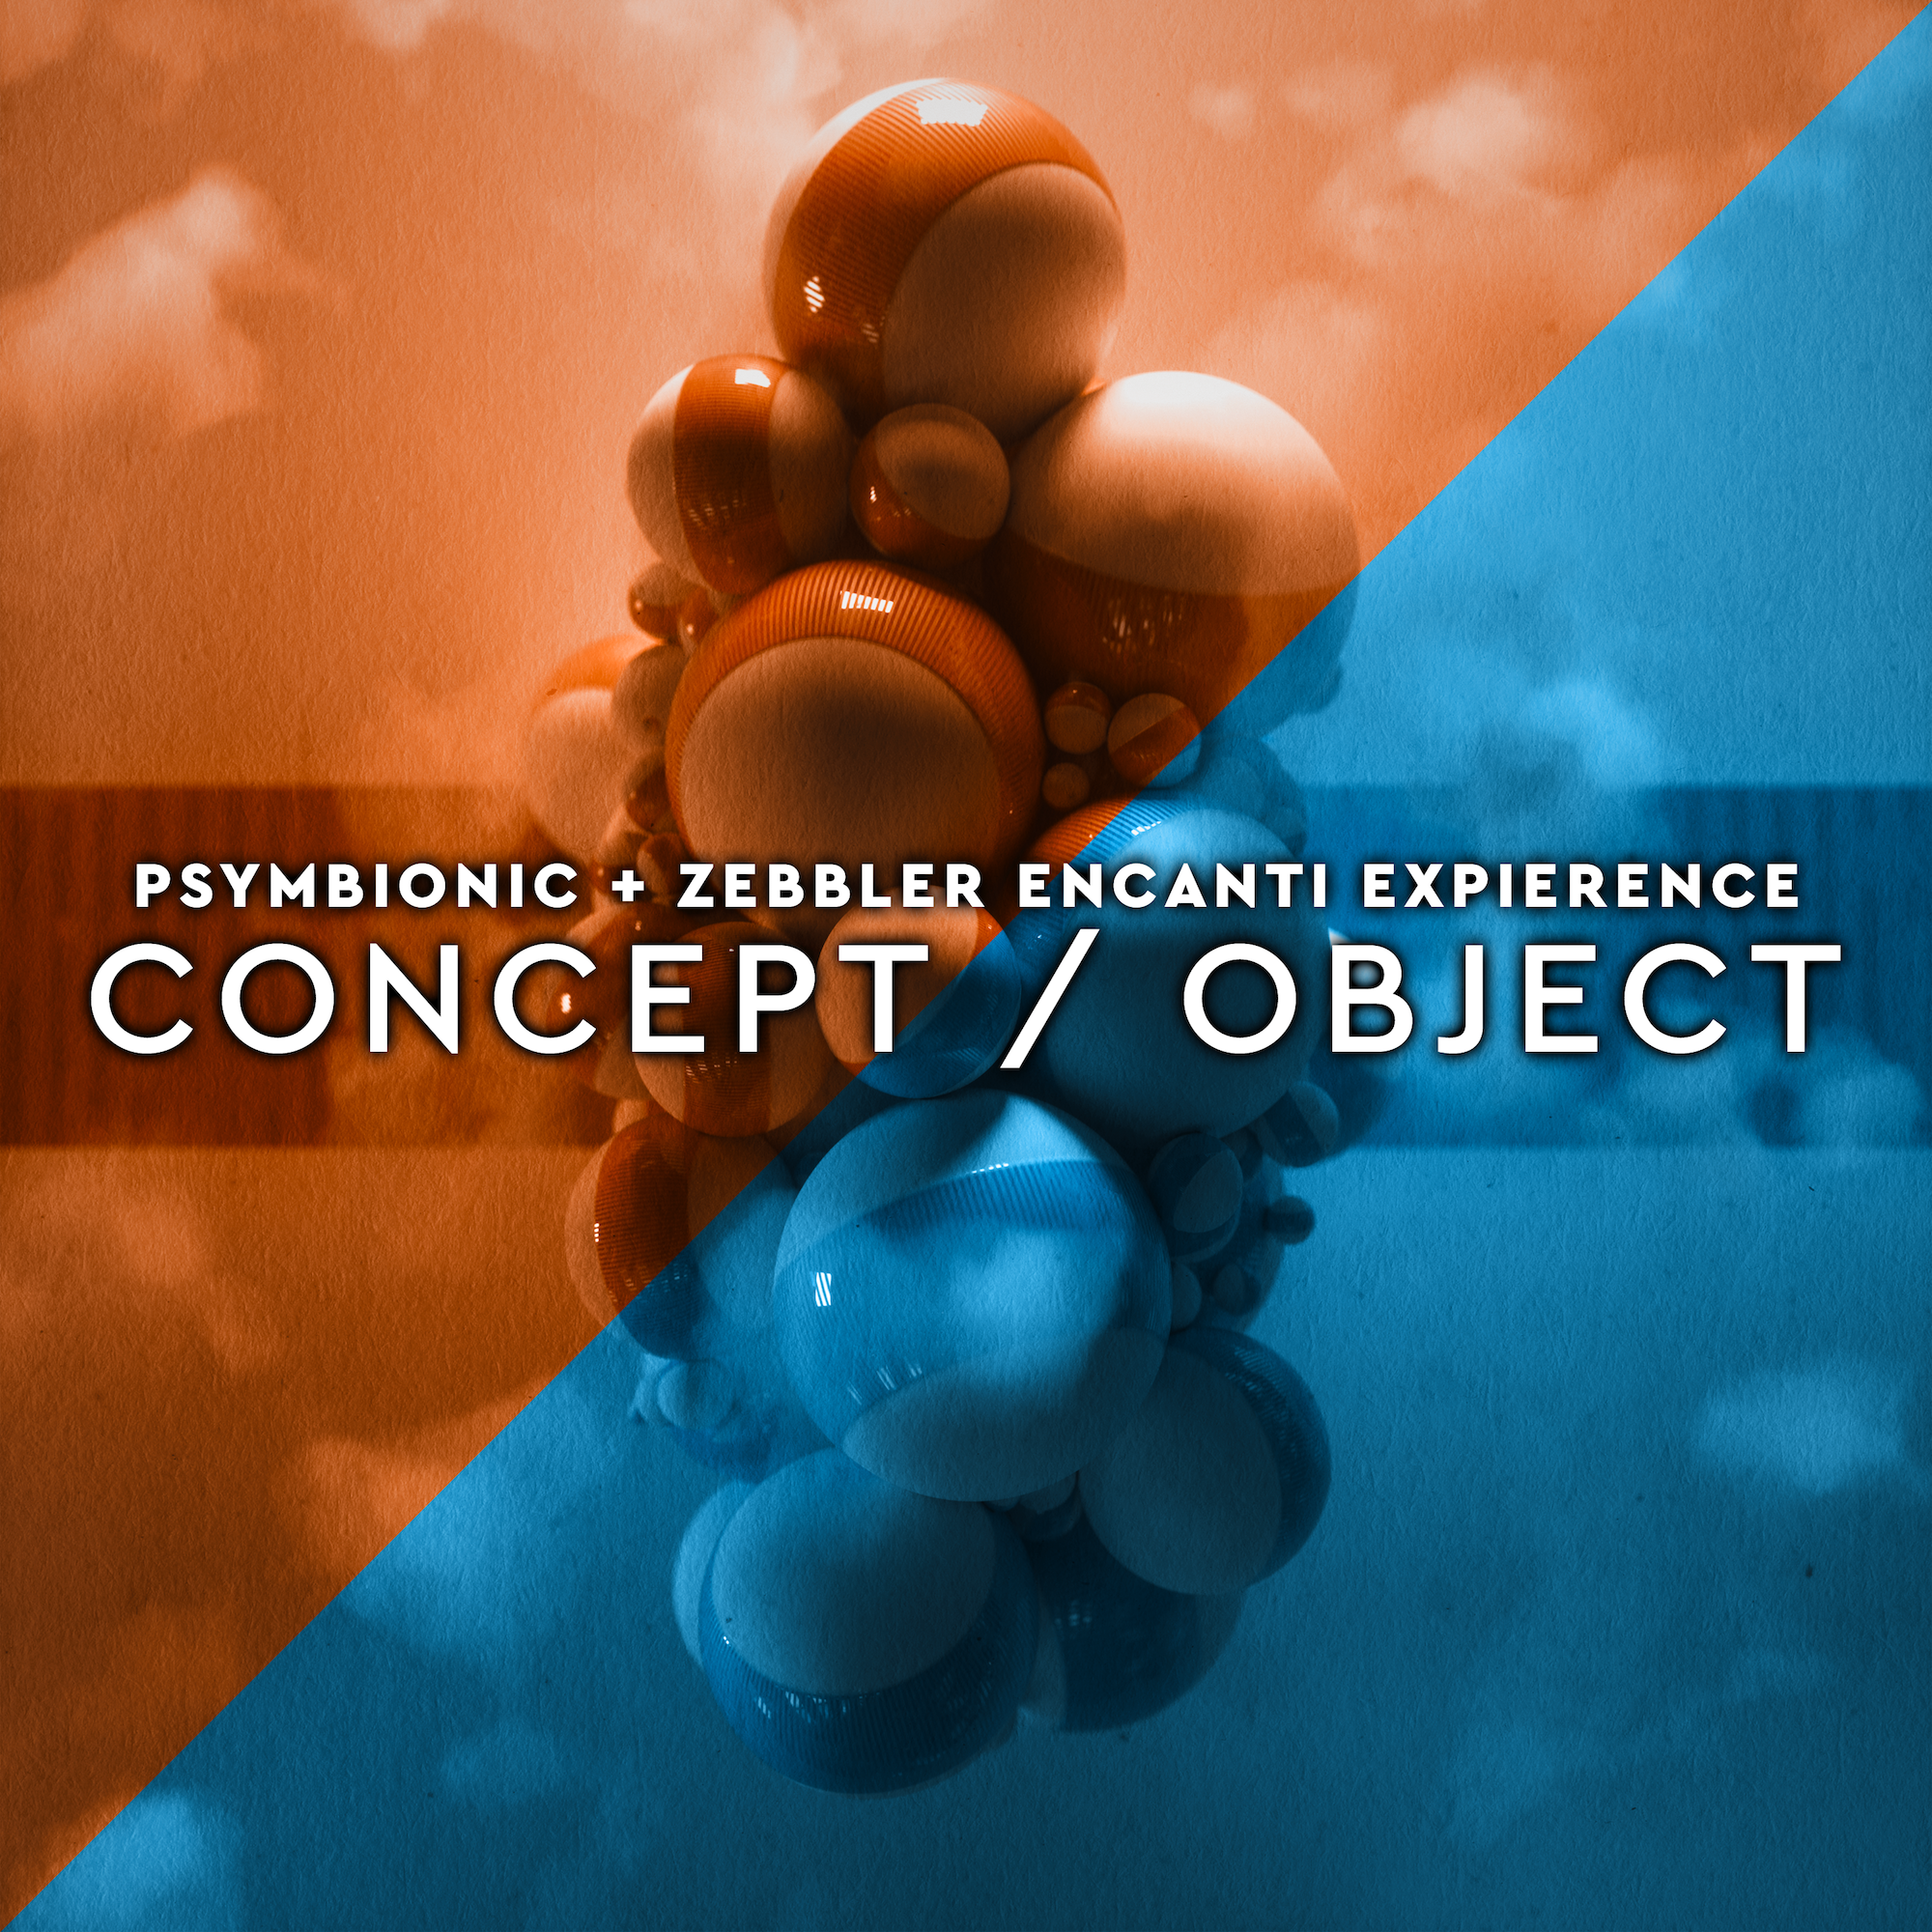 Concept / Object Image